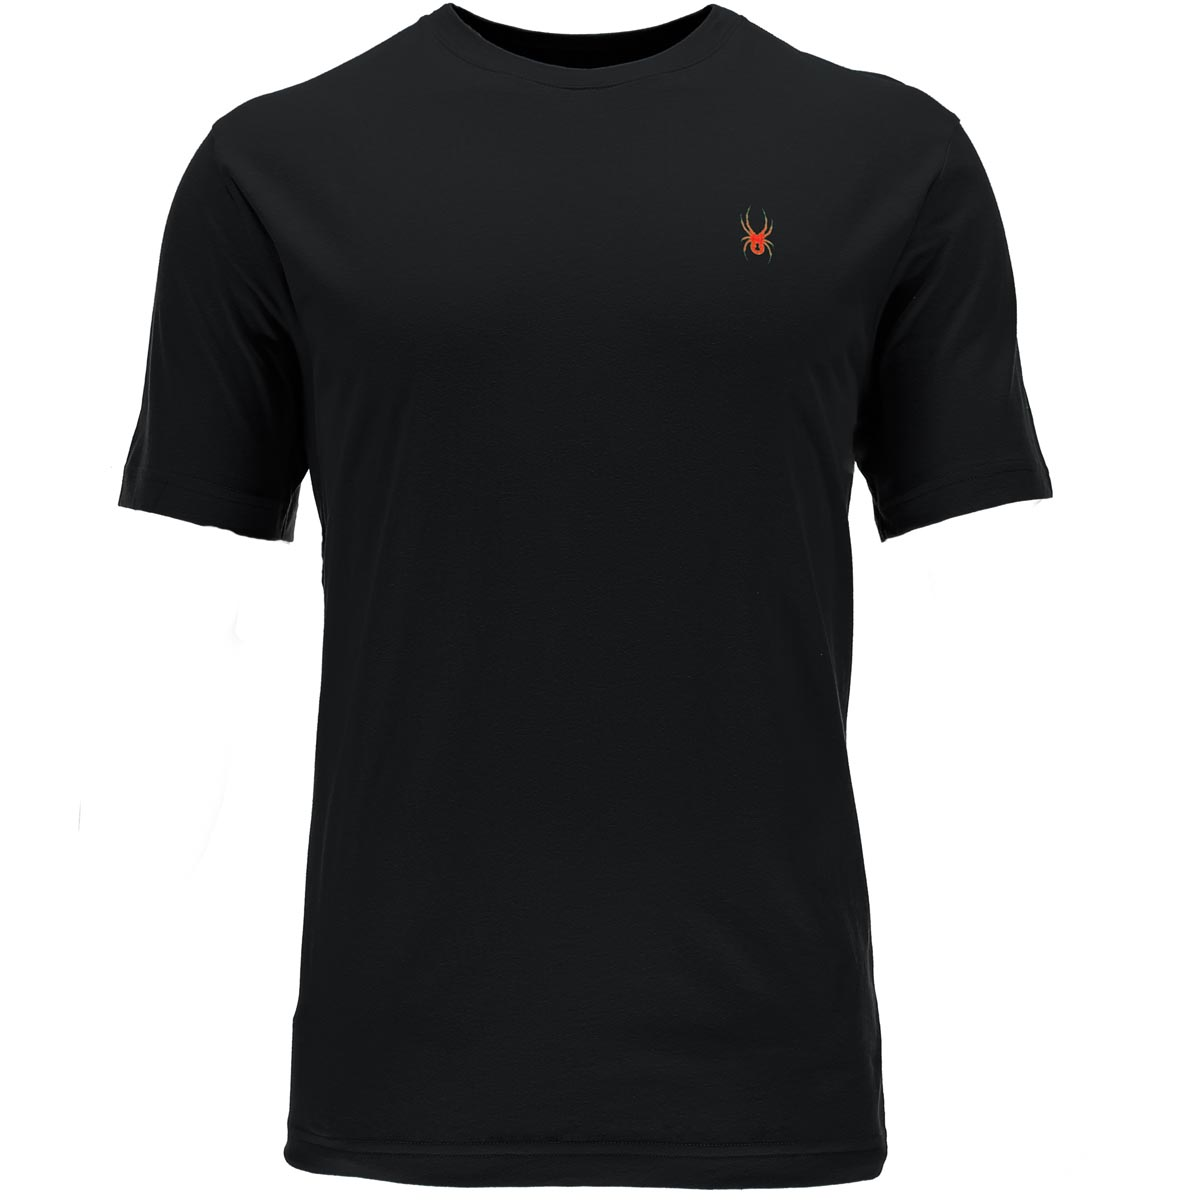 Spyder Men's Route Graphic Short Sleeve T Shirt